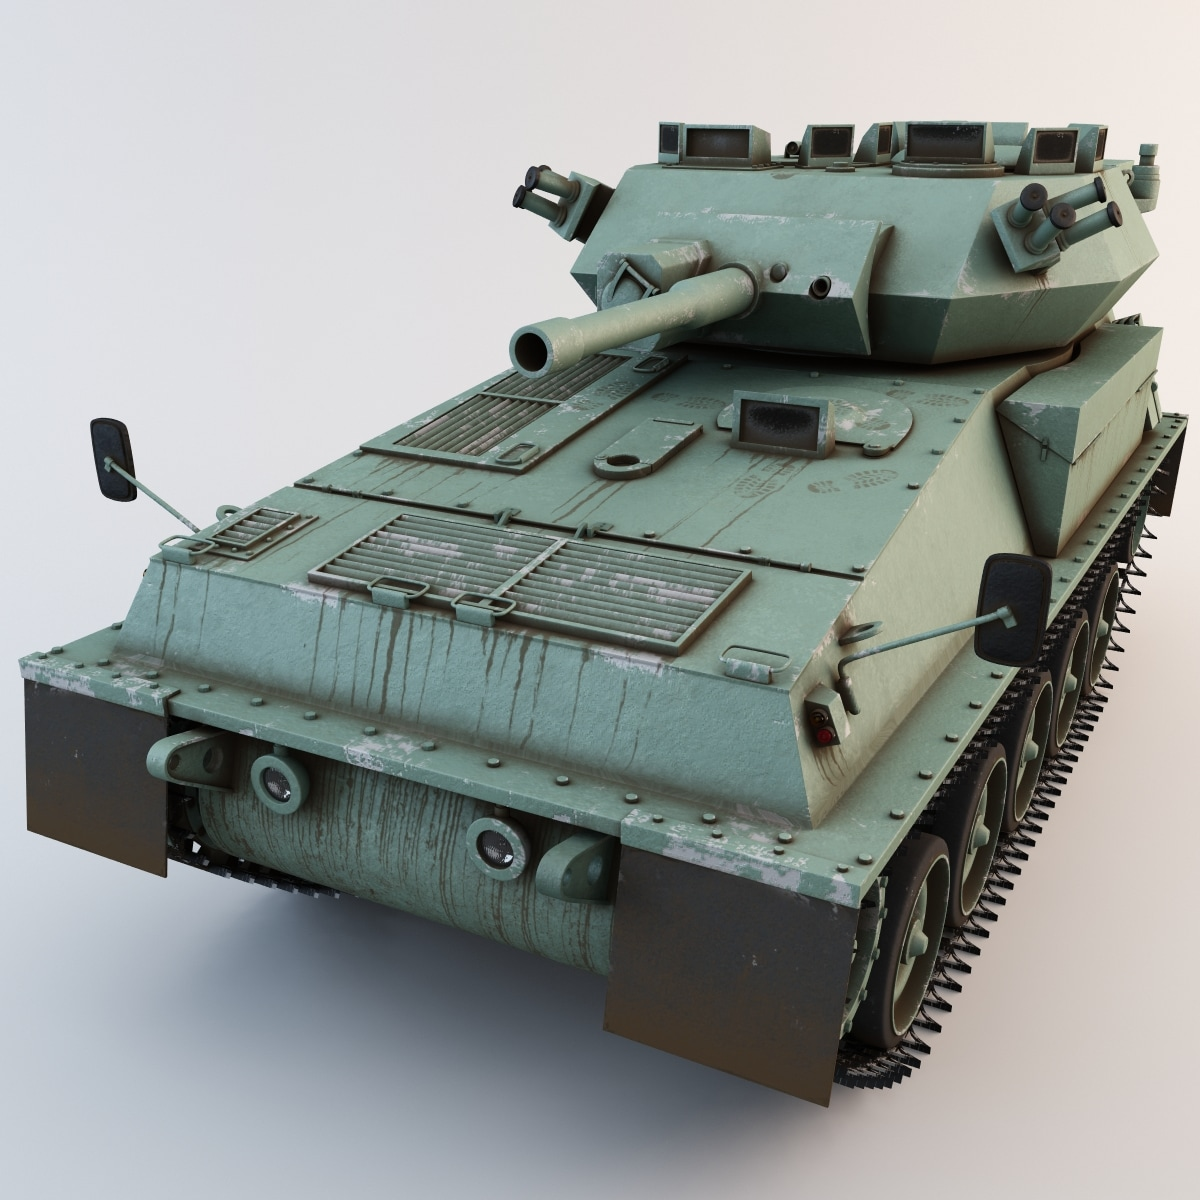 FV101_Scorpion_British_Tank_2_004.jpg